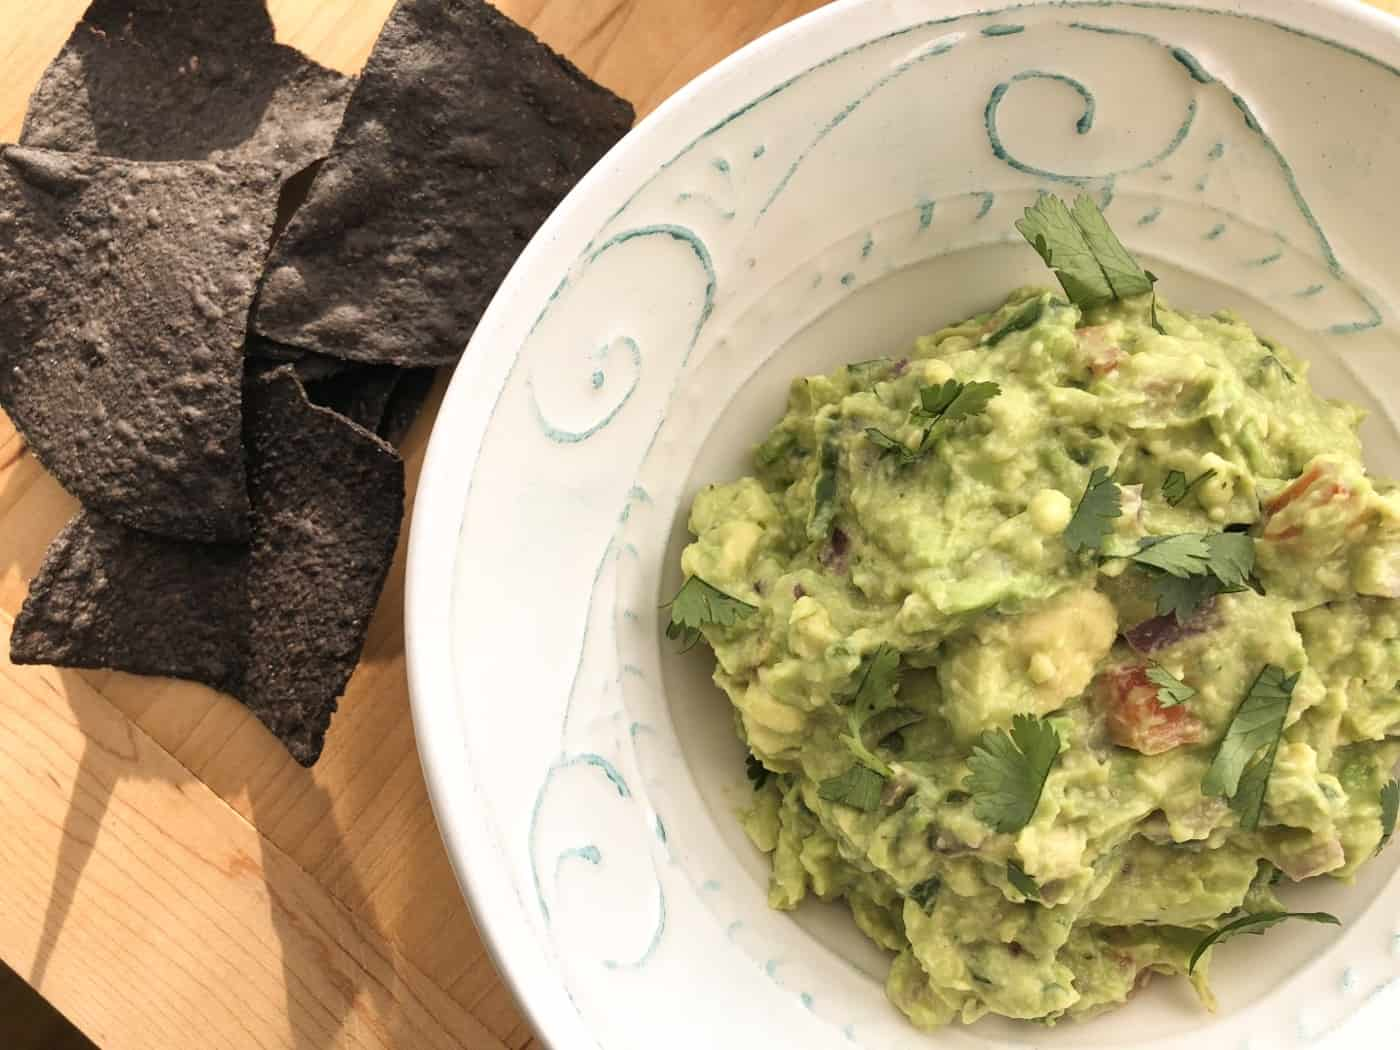 bowl of homemade guacamole with tortillas on the side